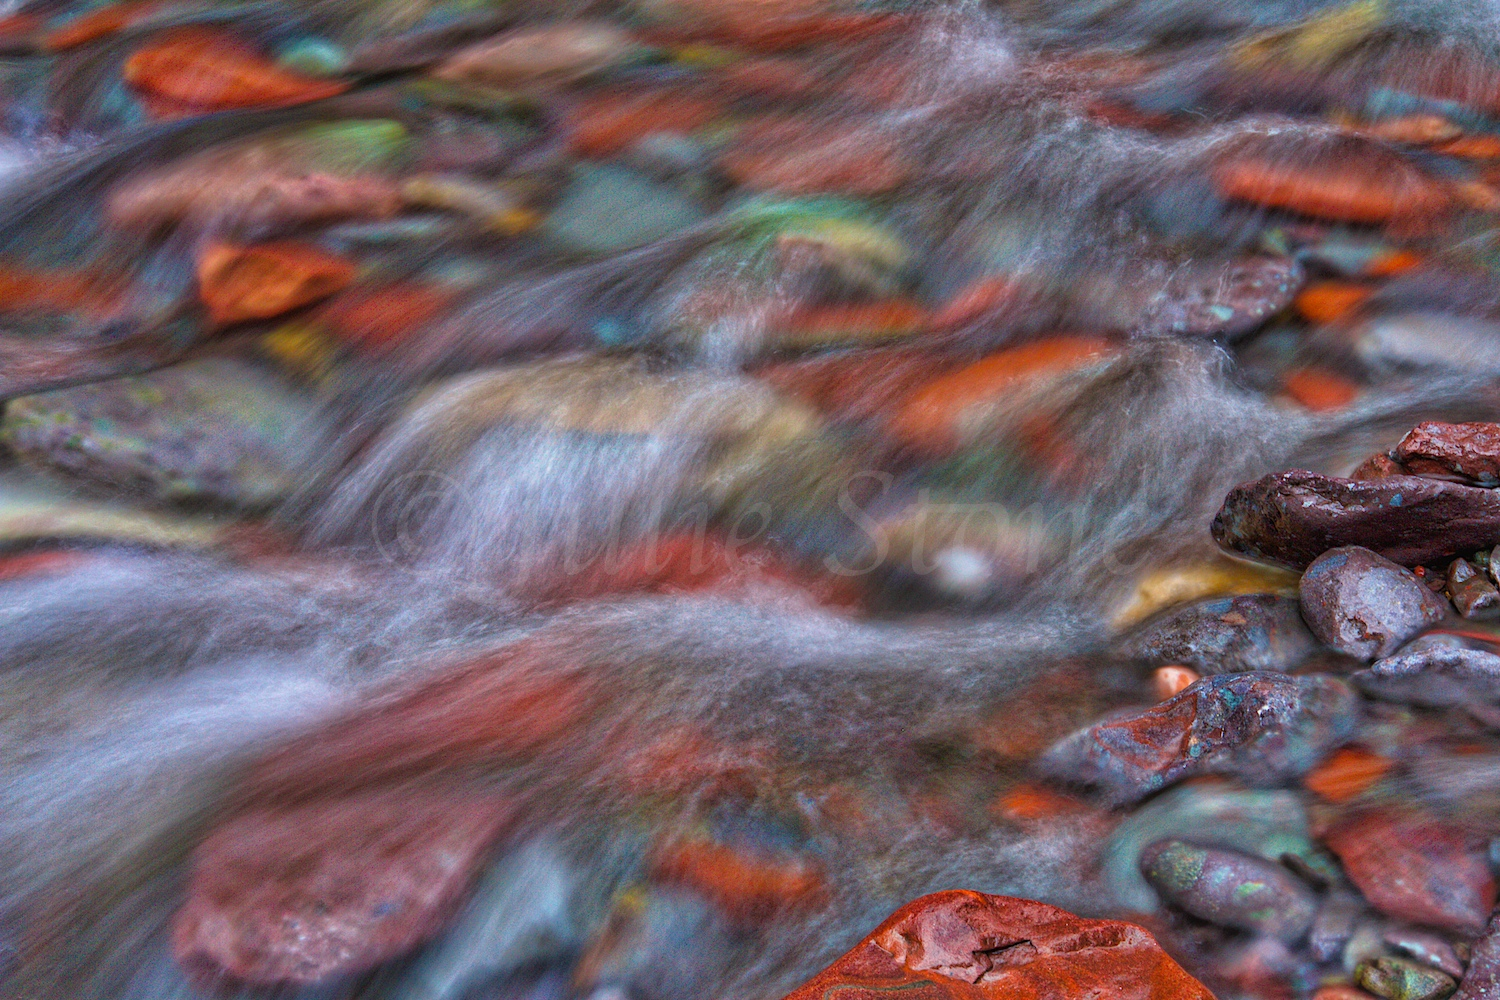 SOUTH MINERAL ROAD RIVER ROCKS 2014 (11)